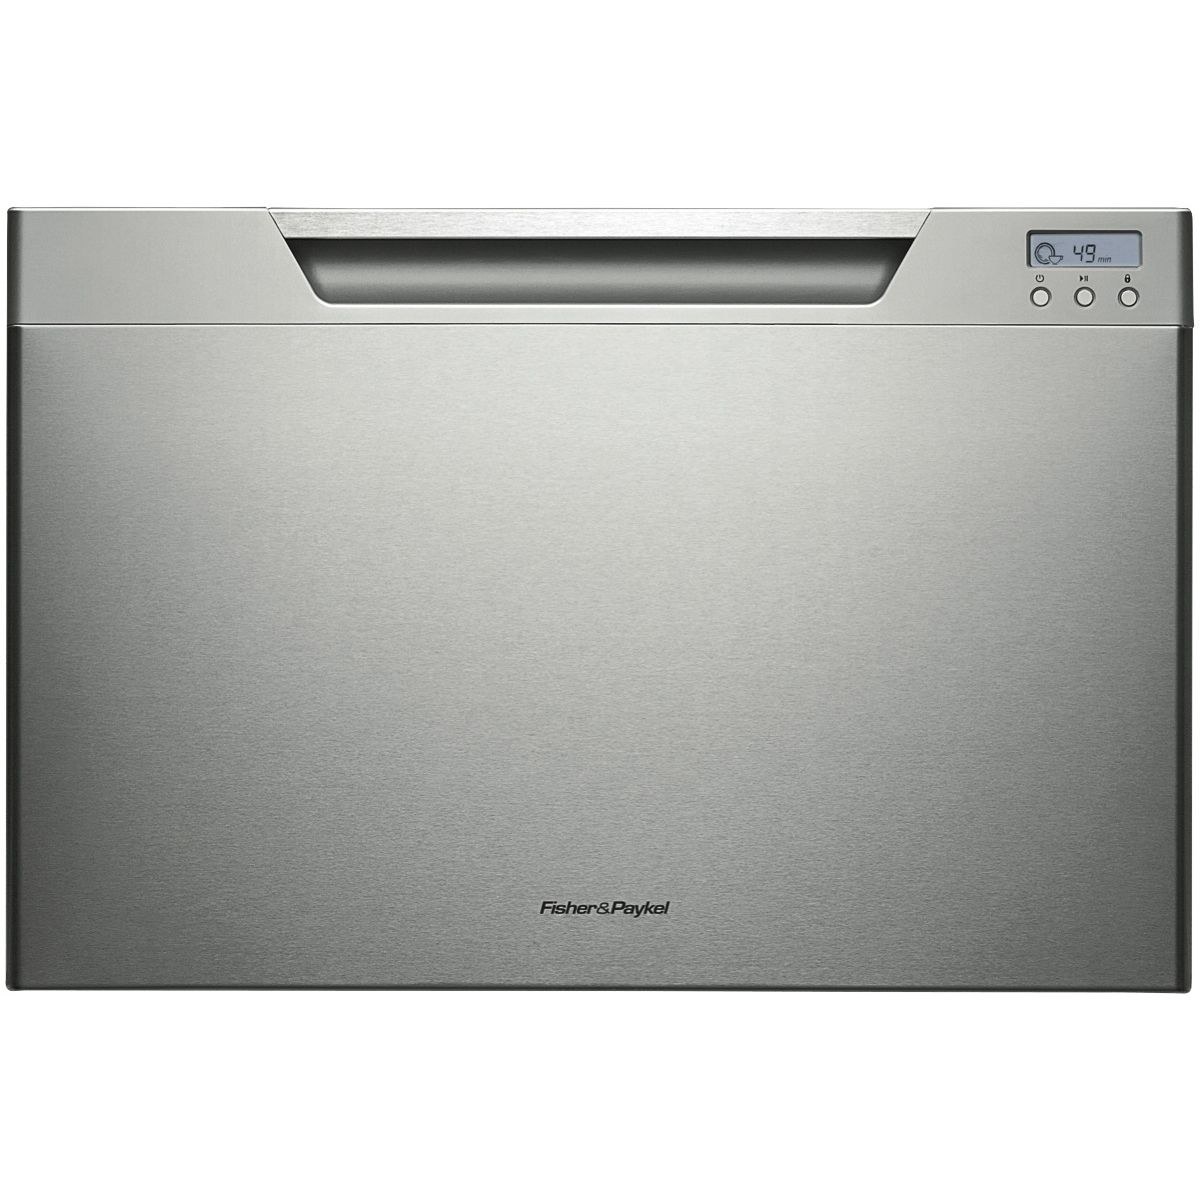 Fisher Paykel Dishdrawer Semi Integrated Single Drawer Dishwasher Energy Star Rated In Stainless Steel